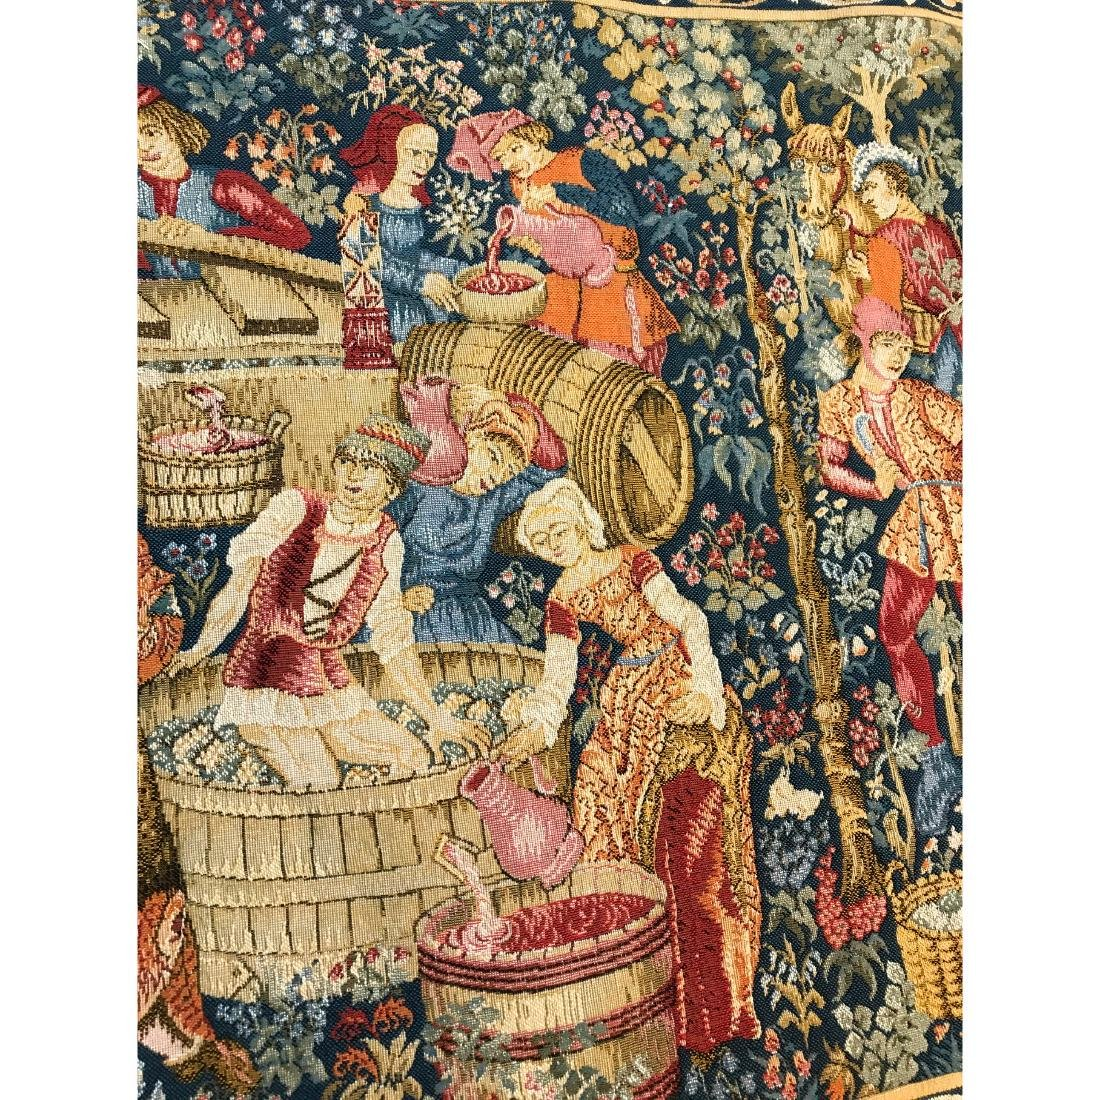 Tapestry with Scene of Medieval Wine Making w/ Rod - 5